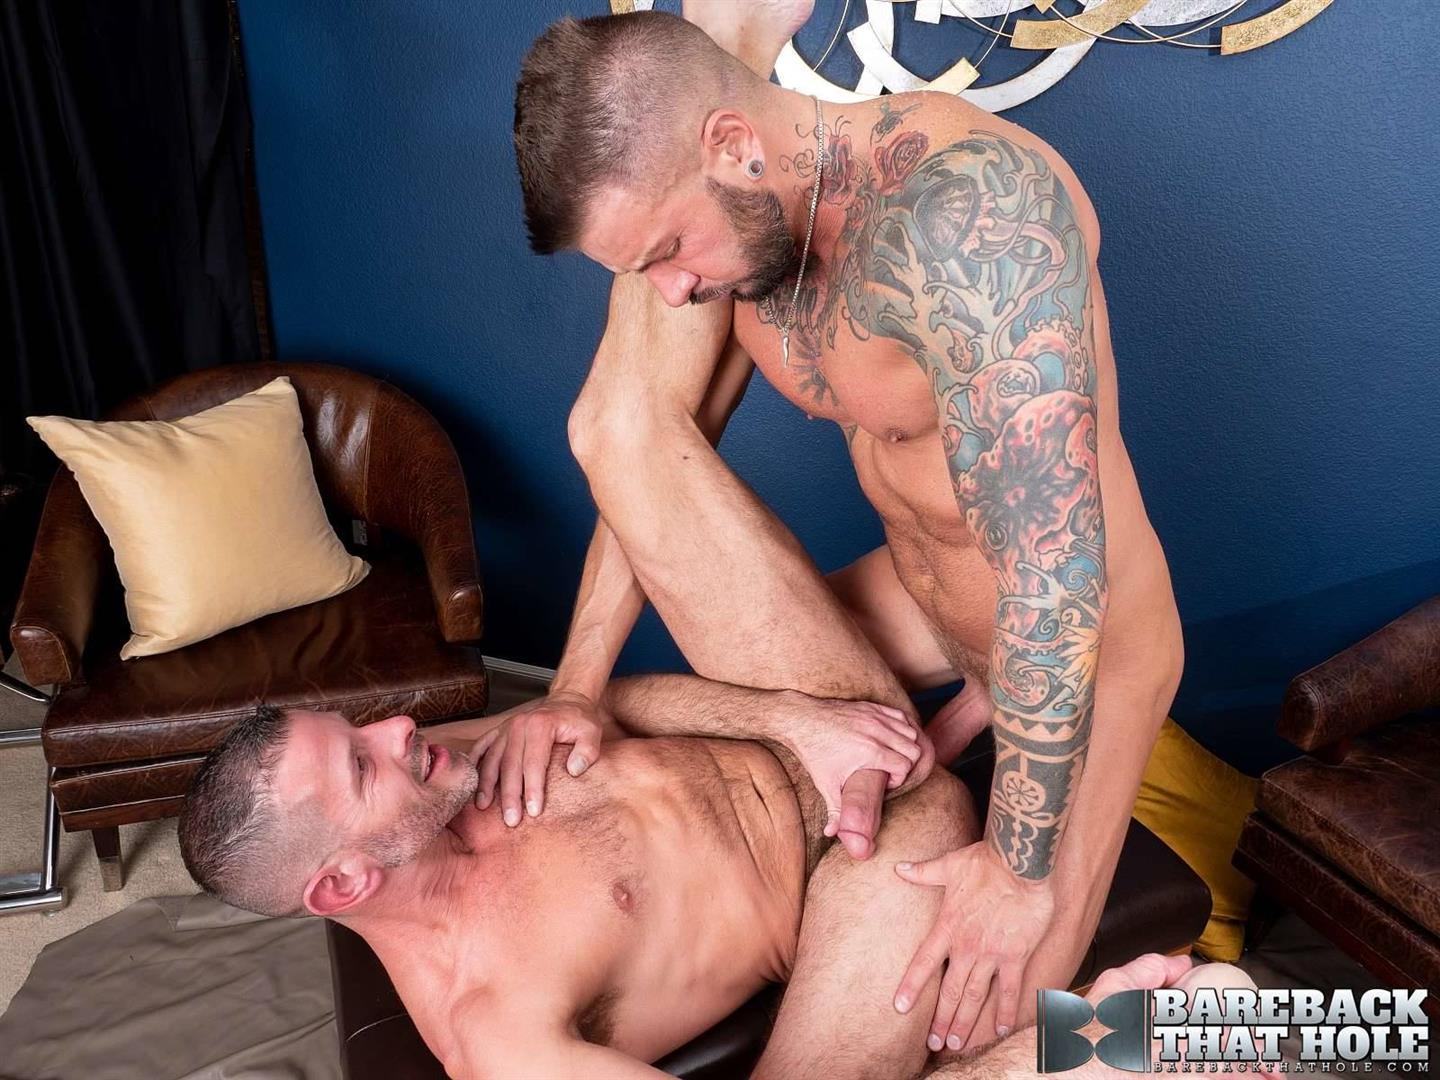 Bareback-That-Hole-Dolf-Dietrich-and-Clay-Towers-Muscle-Daddy-Breeding-Gay-Sex-Video-04 Muscle Hunk Dolf Dietrich Breeding Sexy Daddy Clay Towers